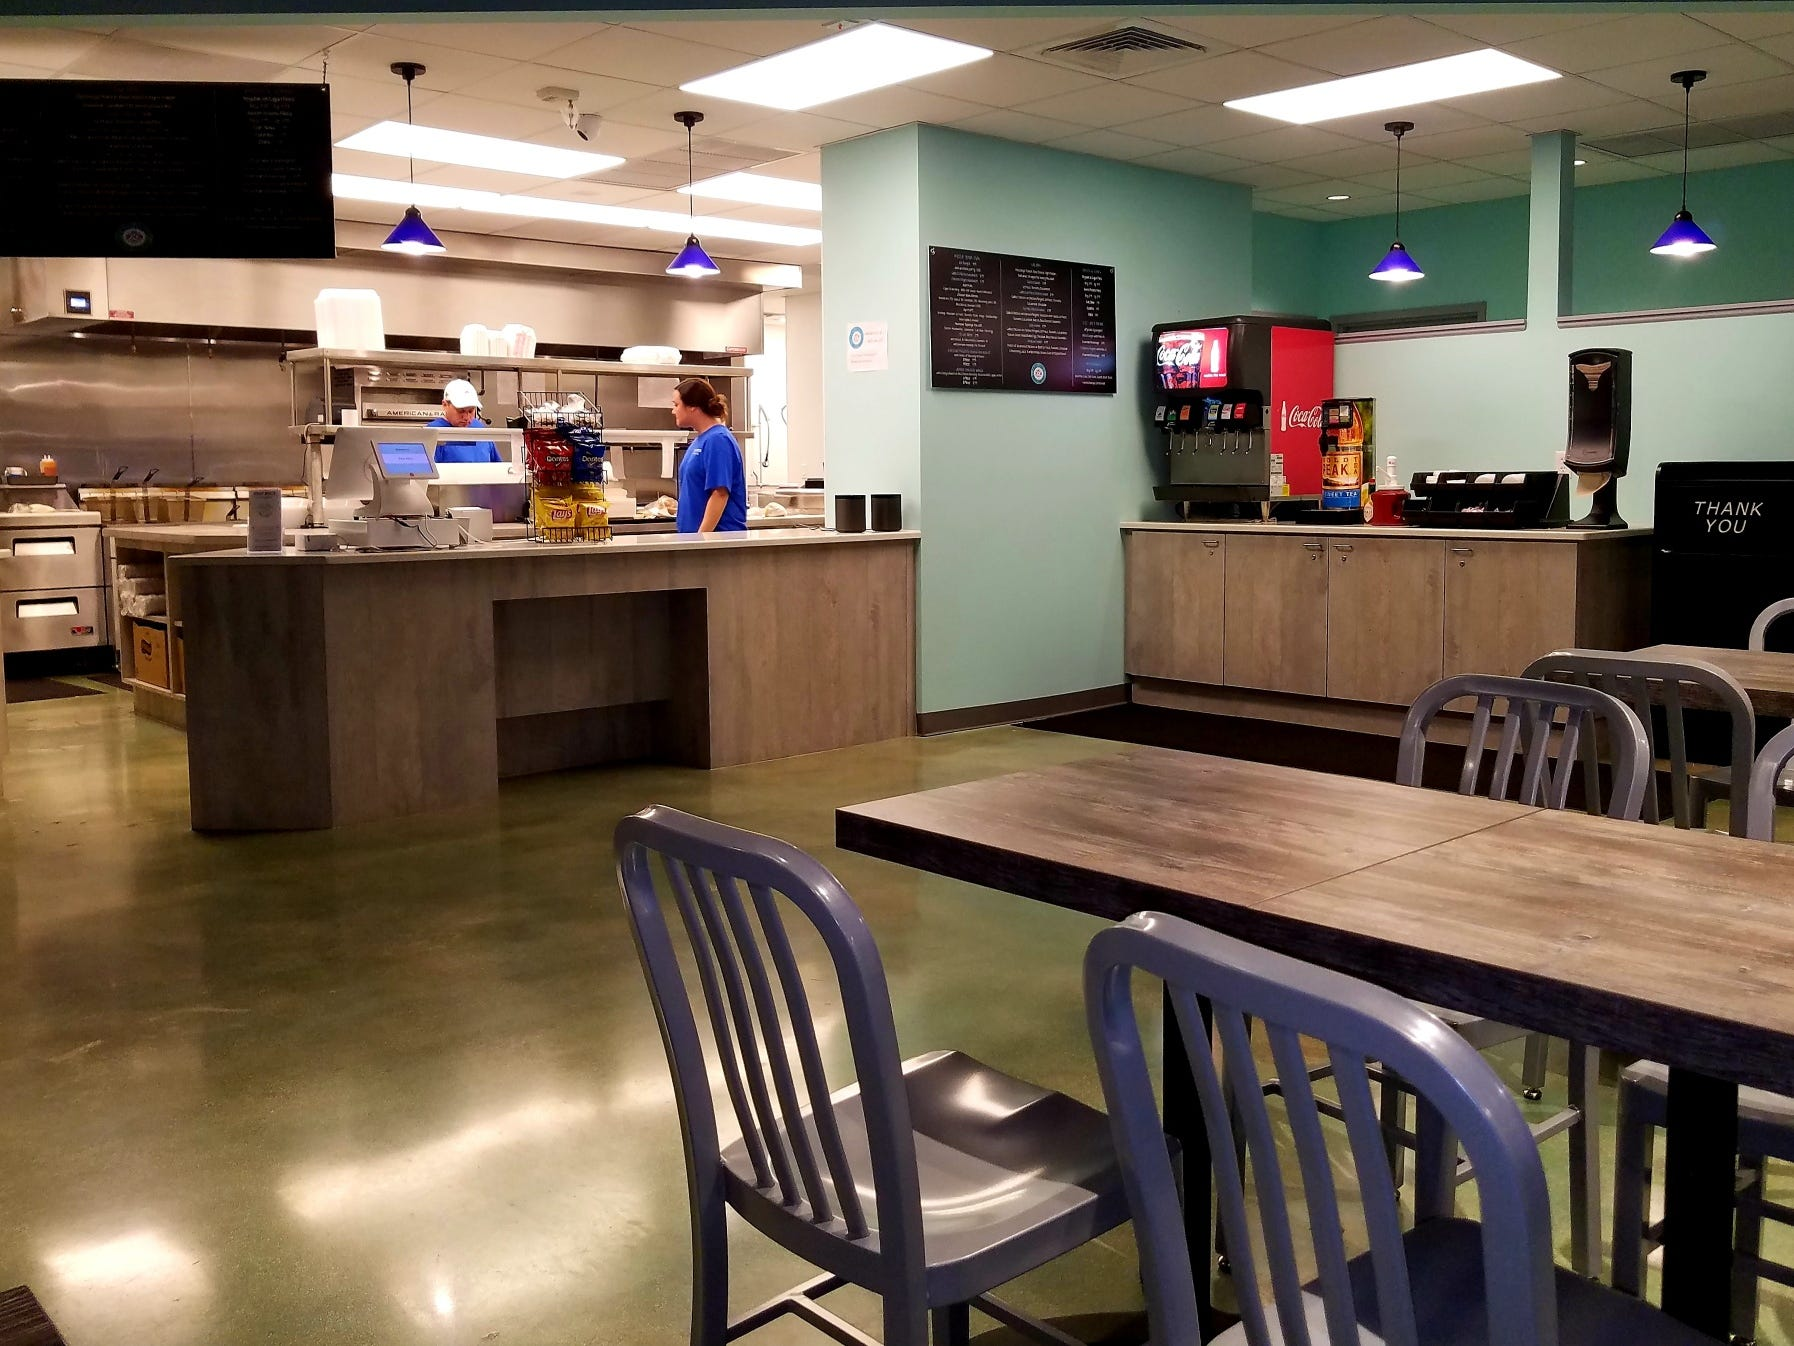 Inside Fast Joe's. Order at the counter, get your own drink, food is delivered to your table.